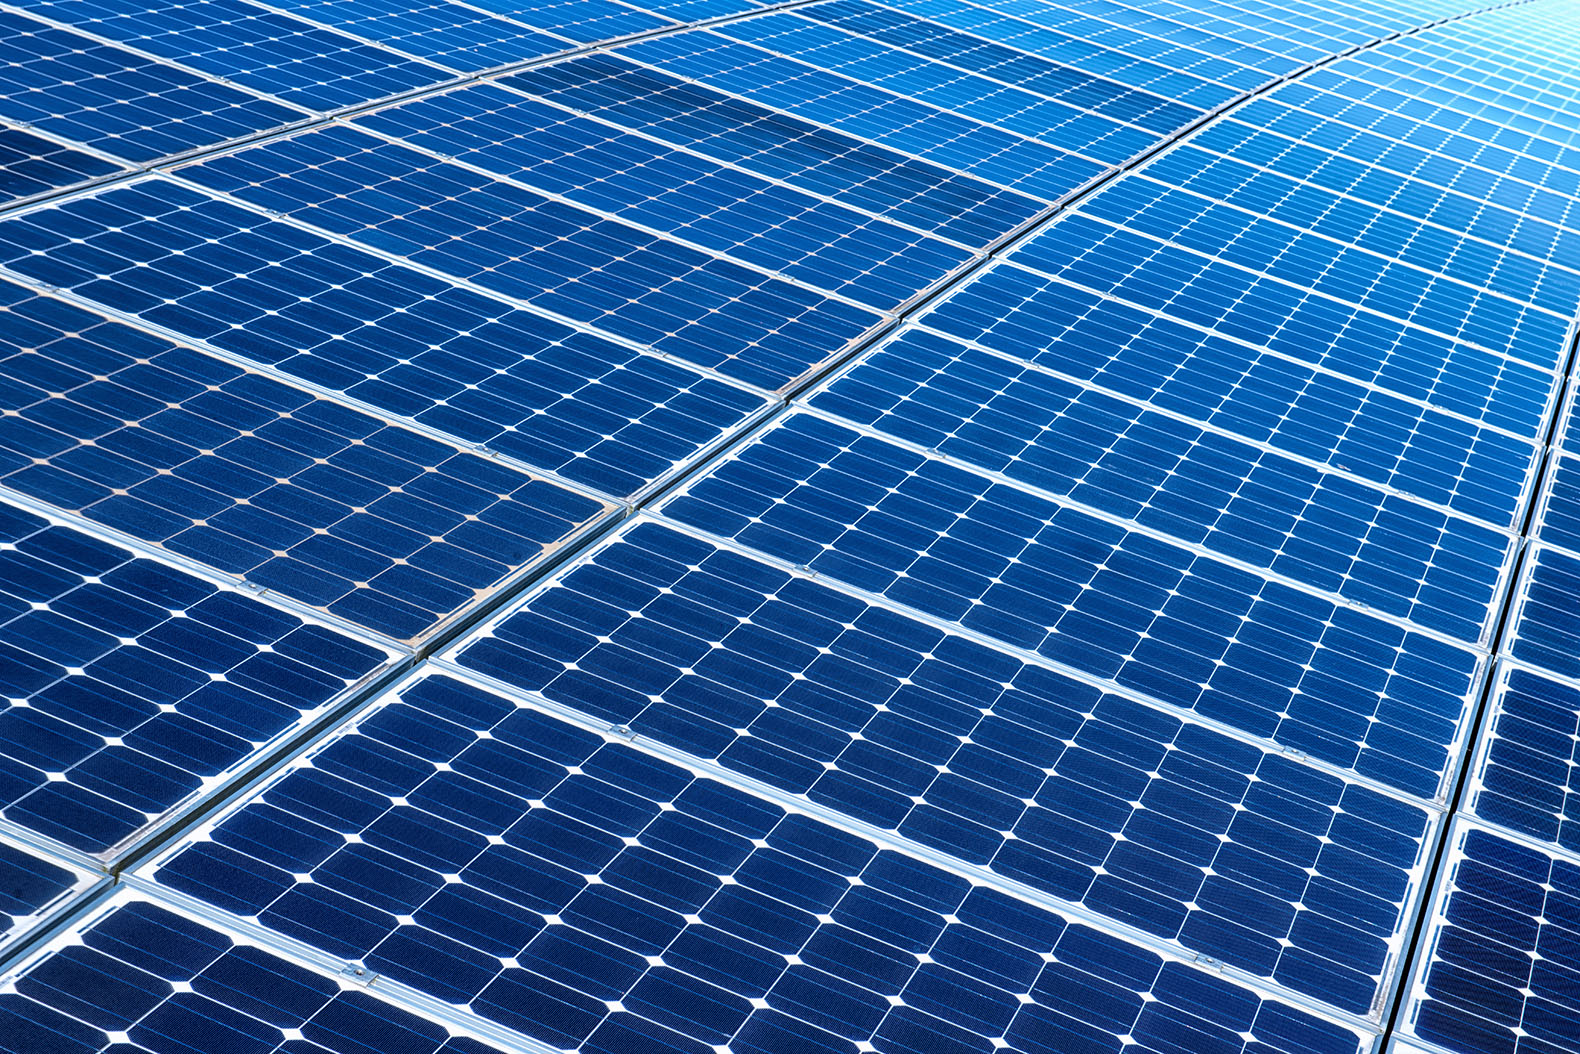 Australian firm brings floating solar plant technology to the U.S.